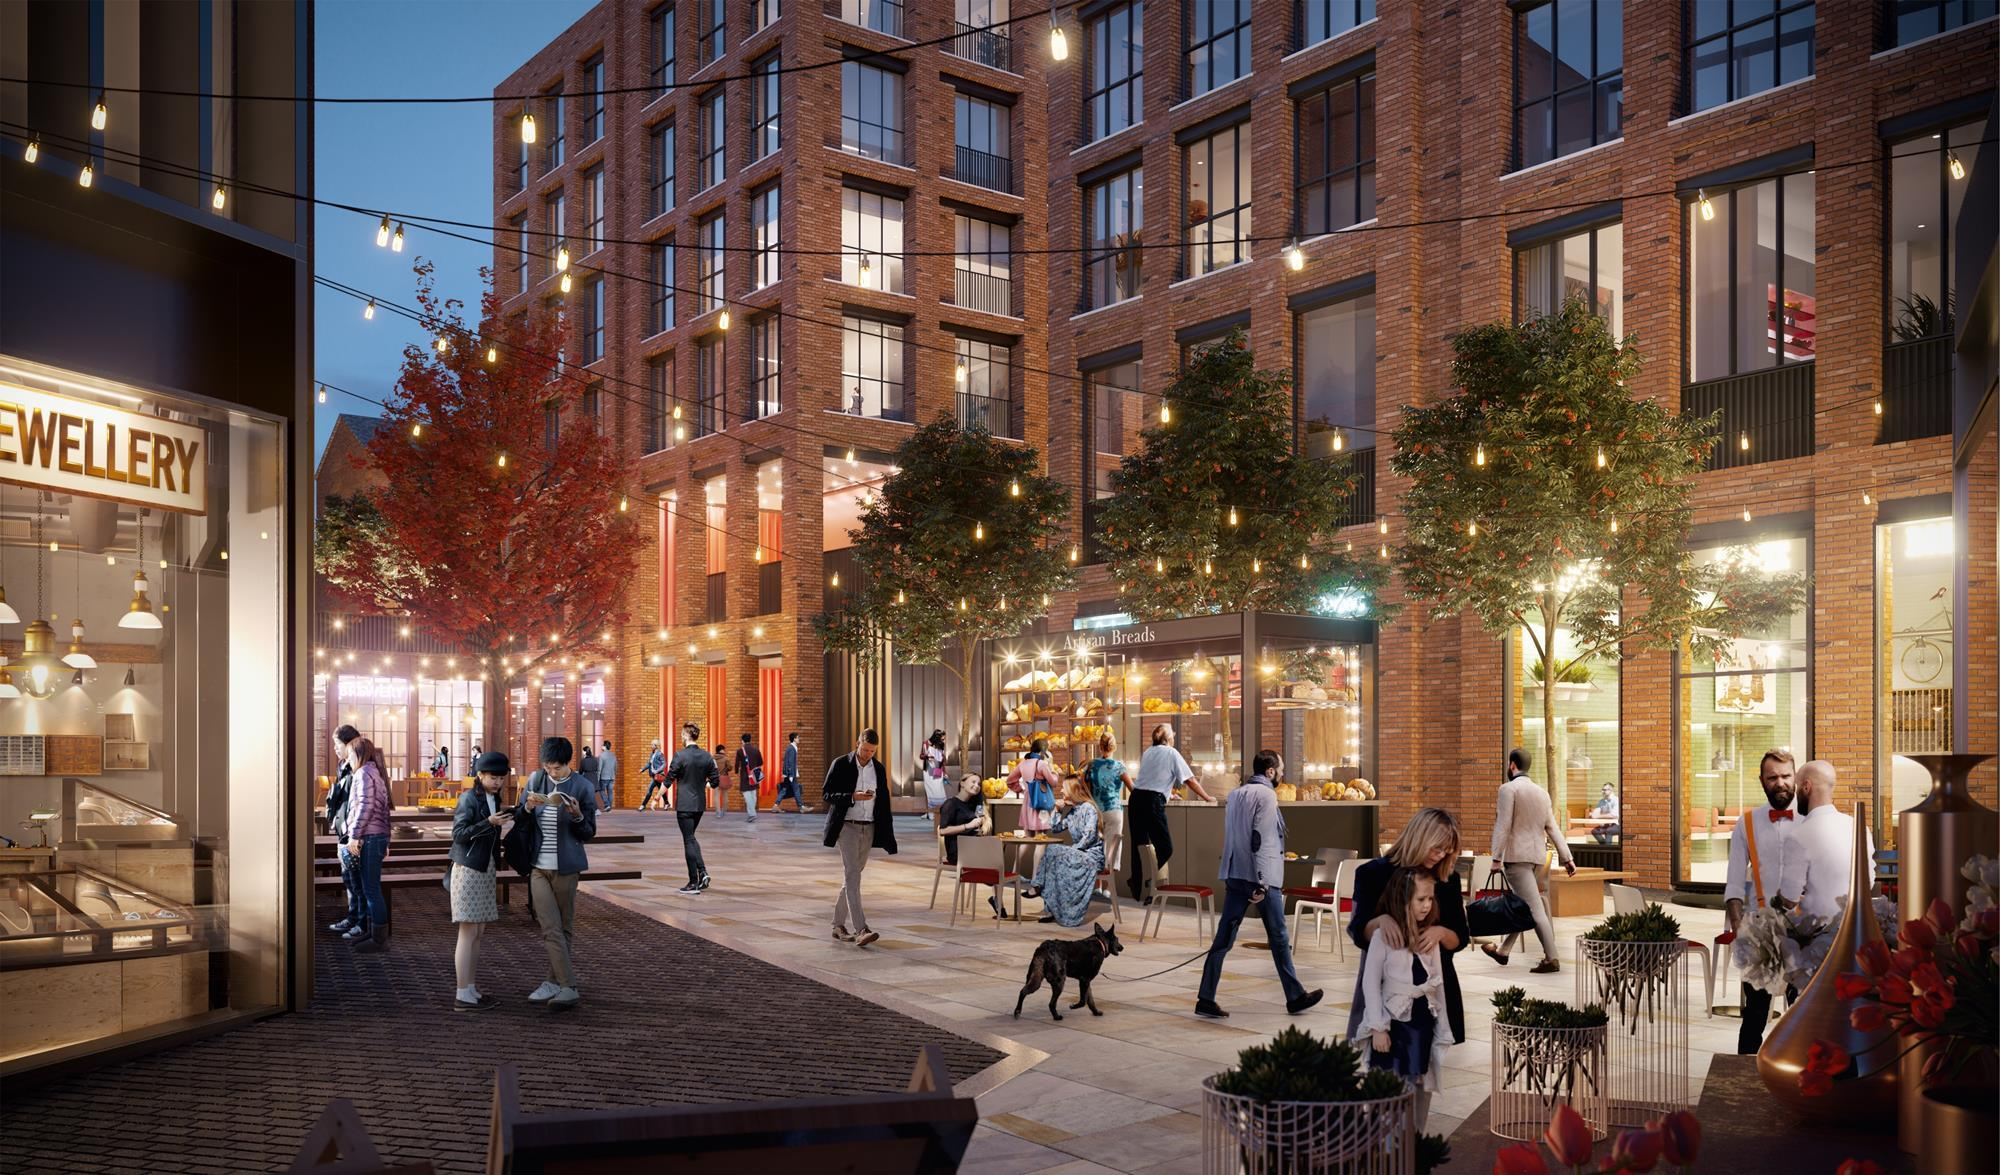 Galliard and Apsley House win planning for £125m Brum scheme - Property Week